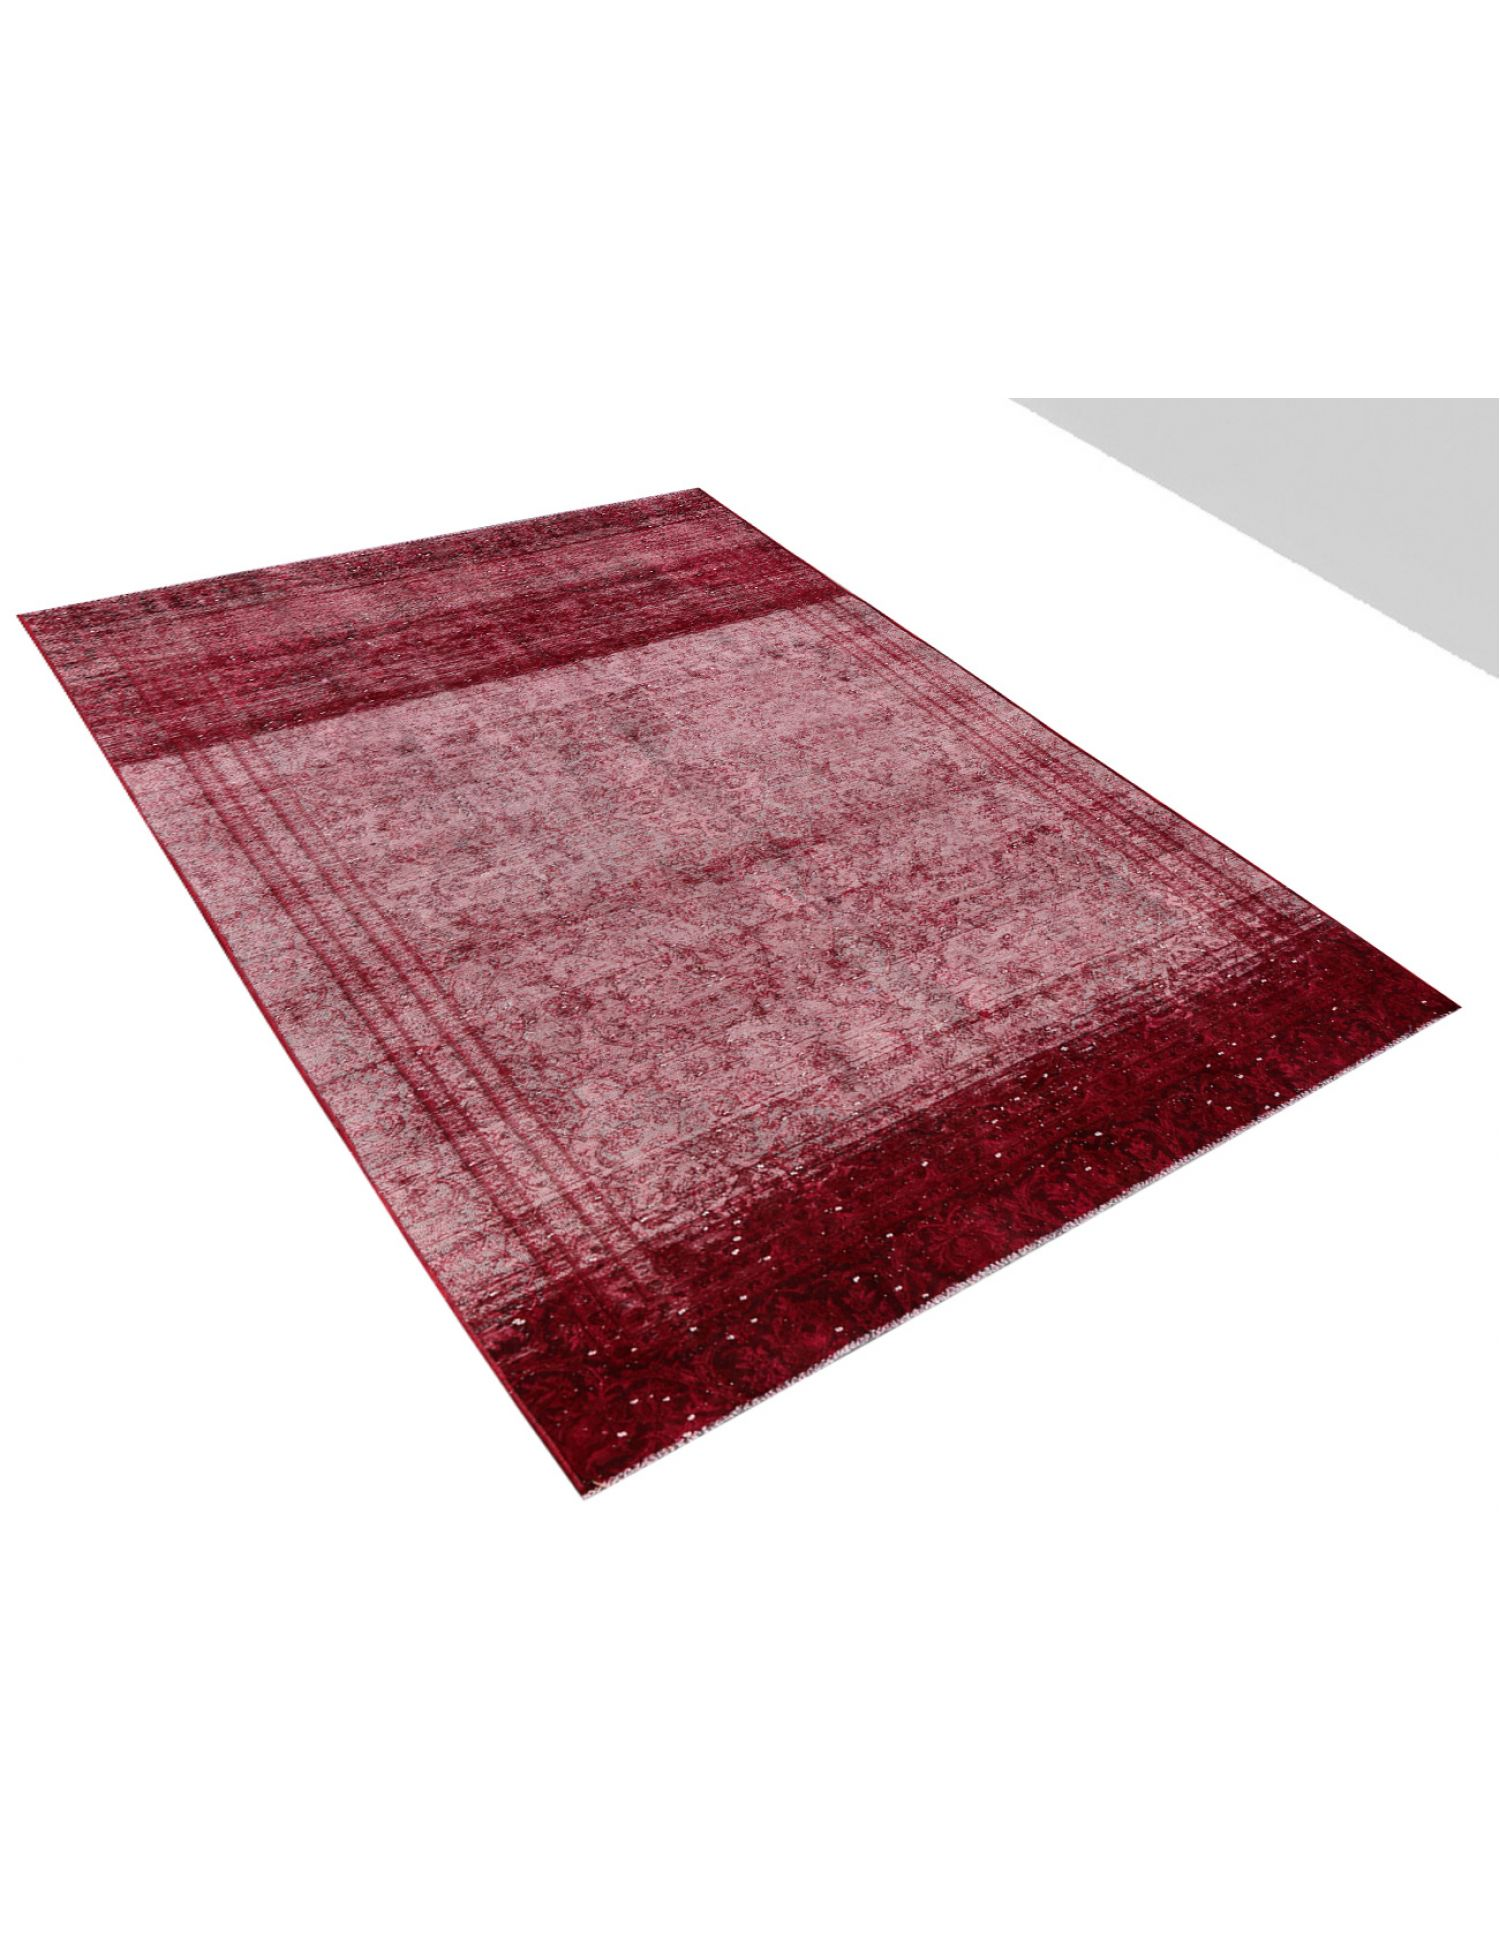 Vintage Carpet  red <br/>351 x 190 cm